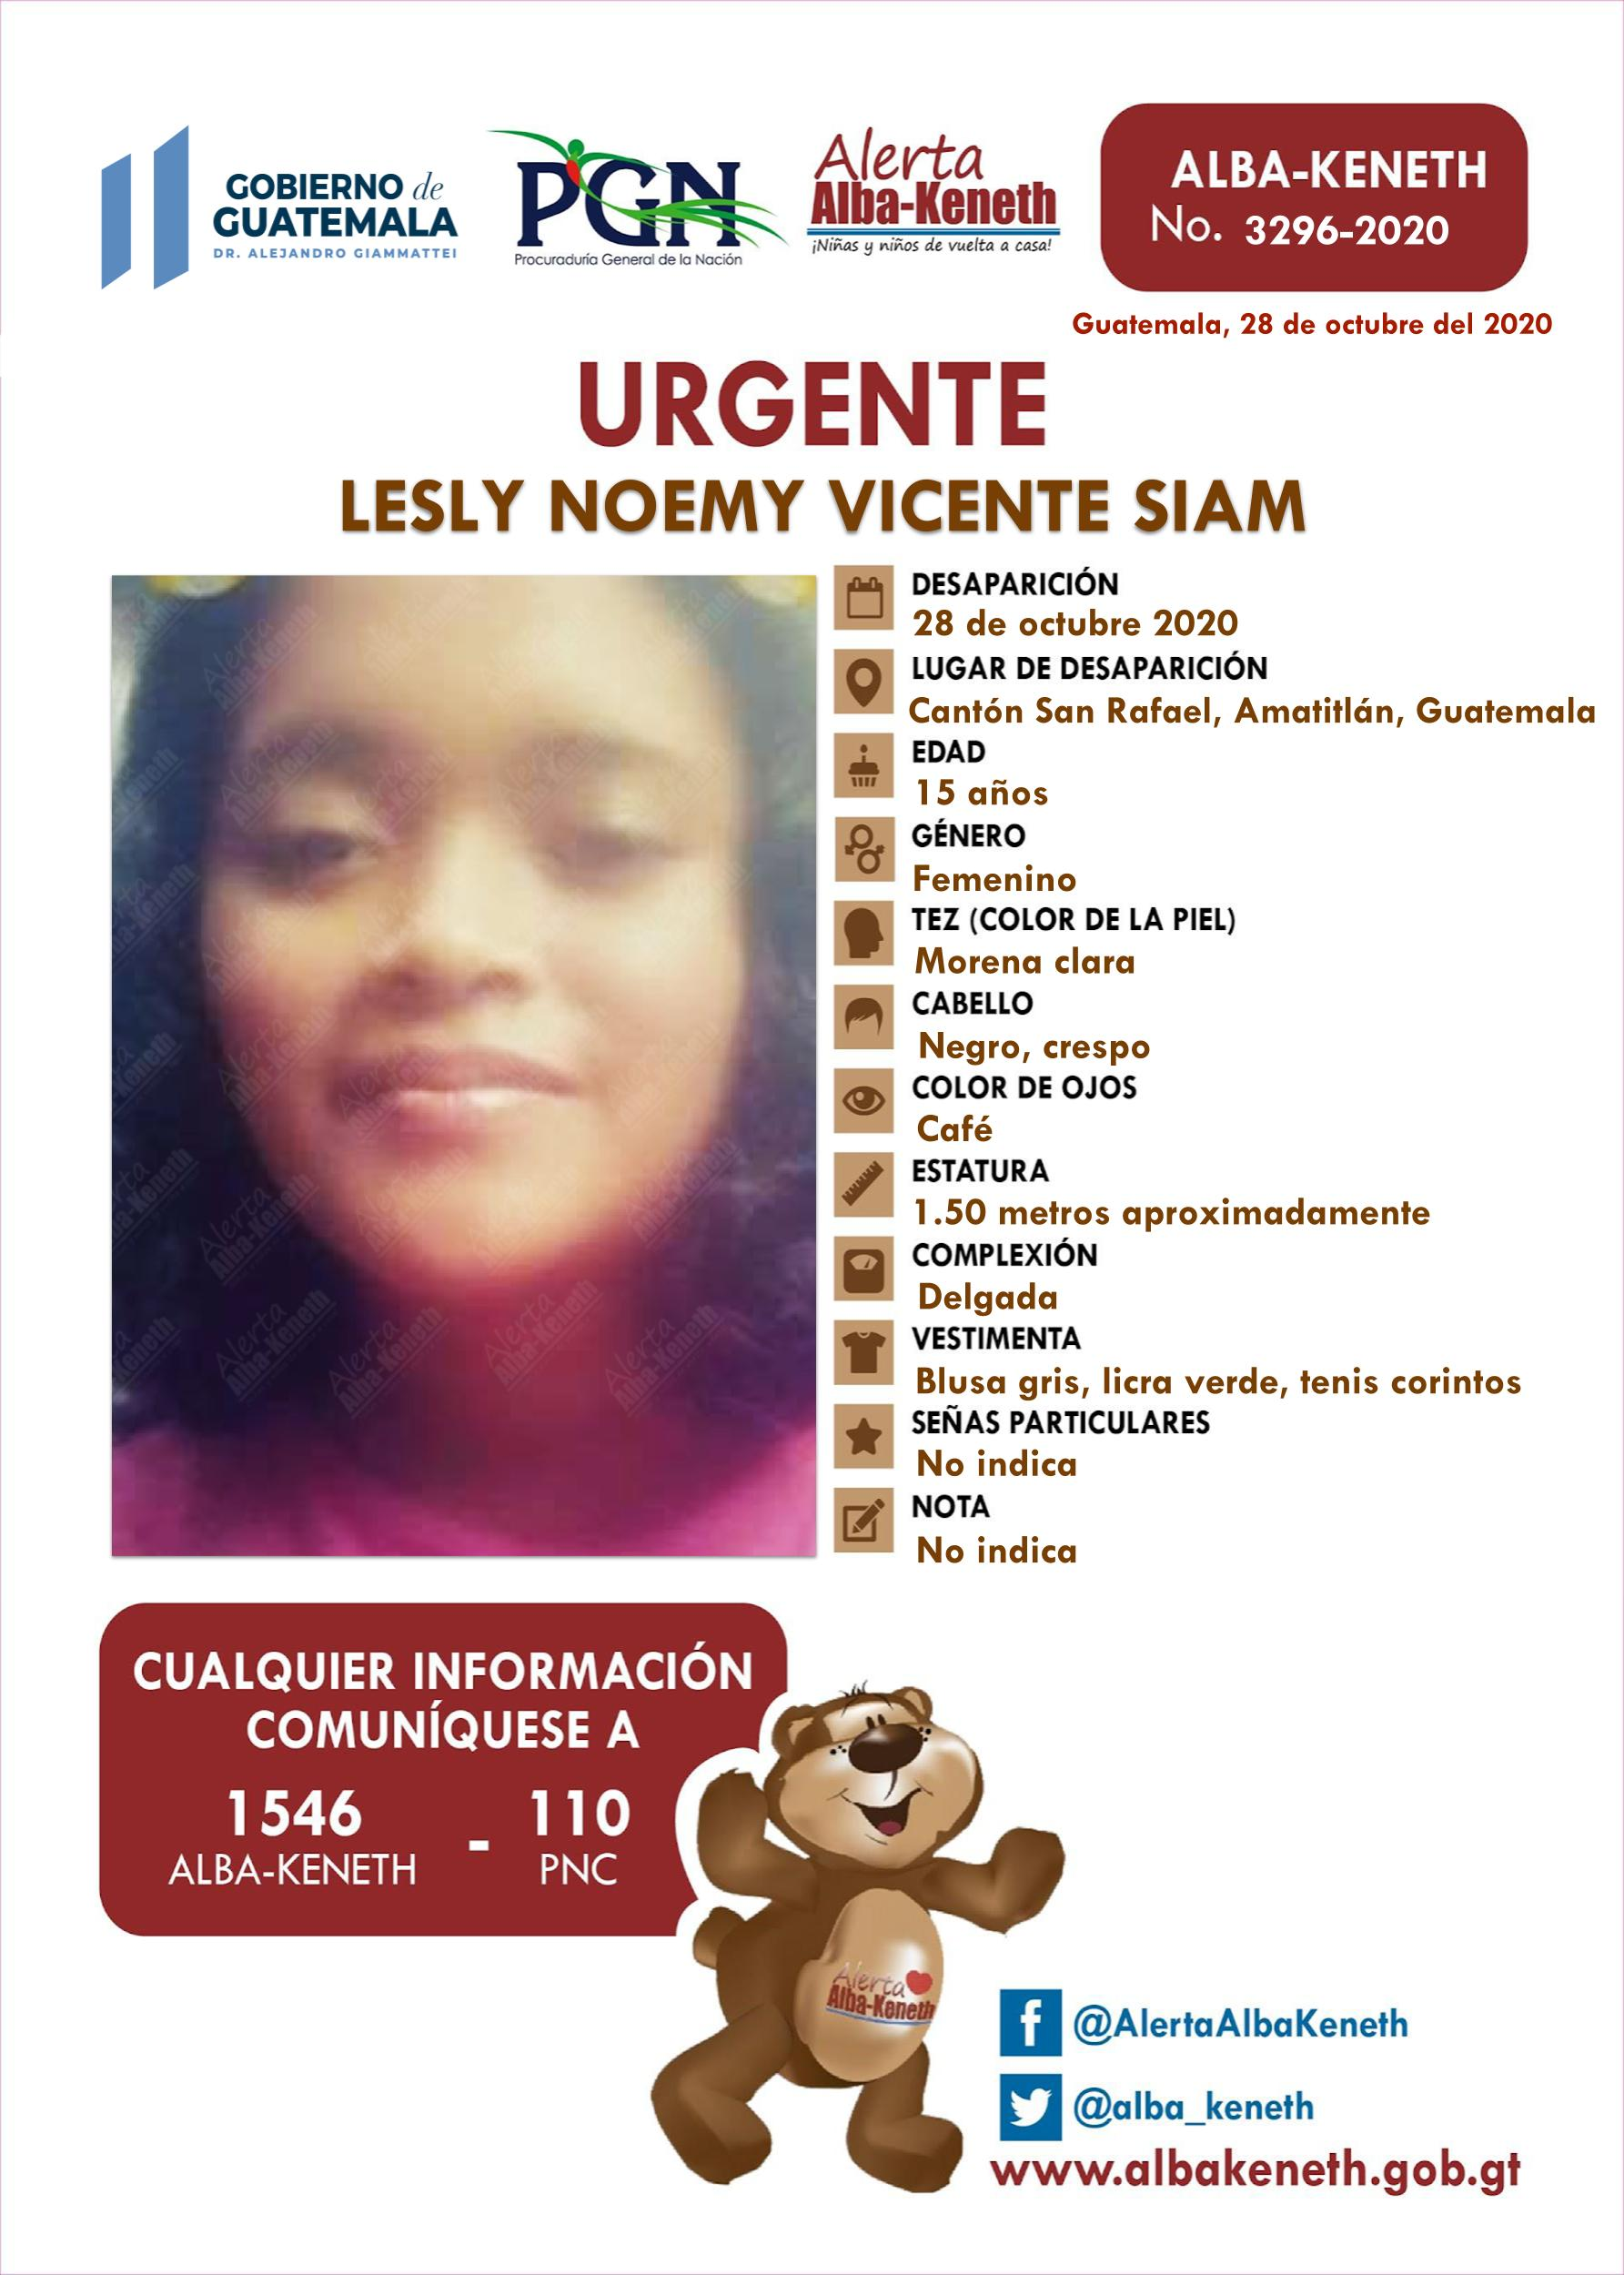 Lesly Noemy Vicente Siam